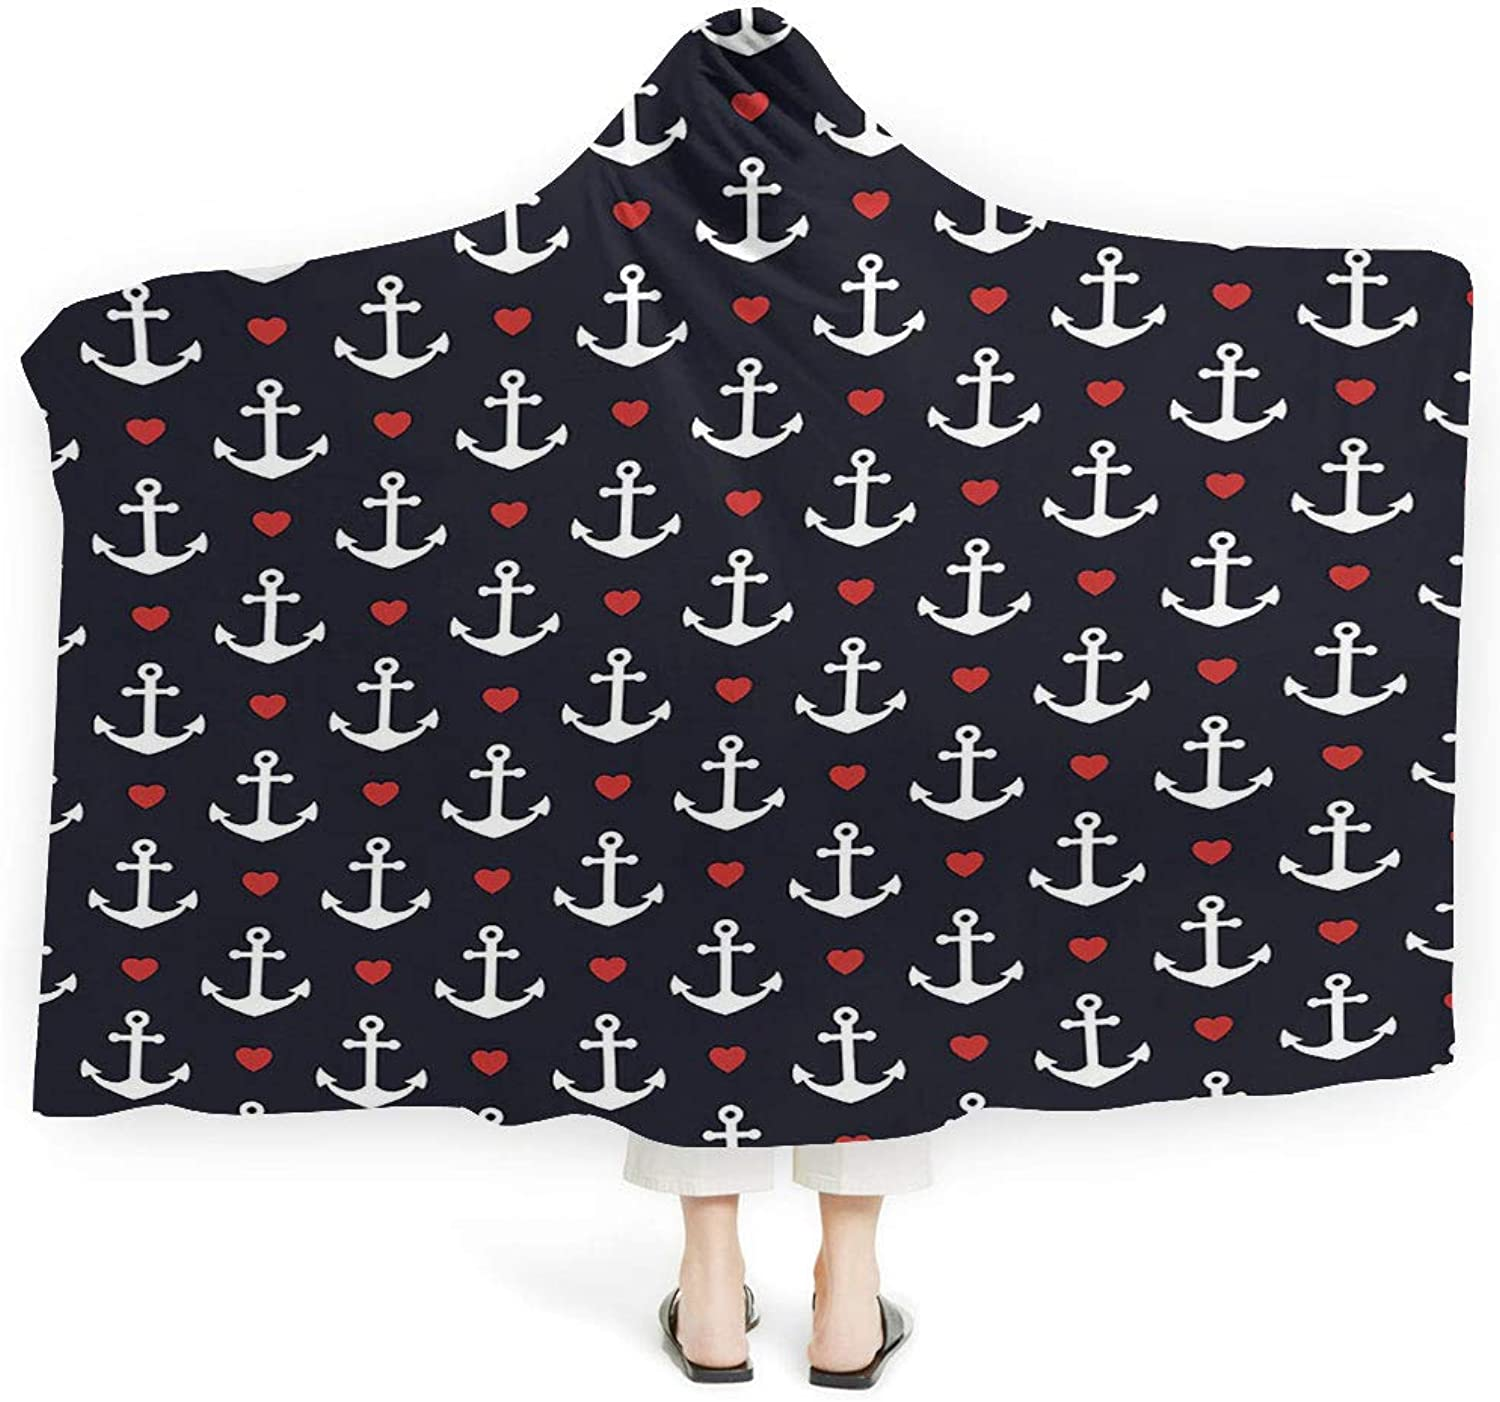 Baby Hooded Blanket Boys Girls Anchor Decor Soft Fluffy Minky Warm Cover Relieves Anxiety Stress Insomnia Contemporary Illustration an Anchor Safety Artistic Design Security Nautical Art (Adult